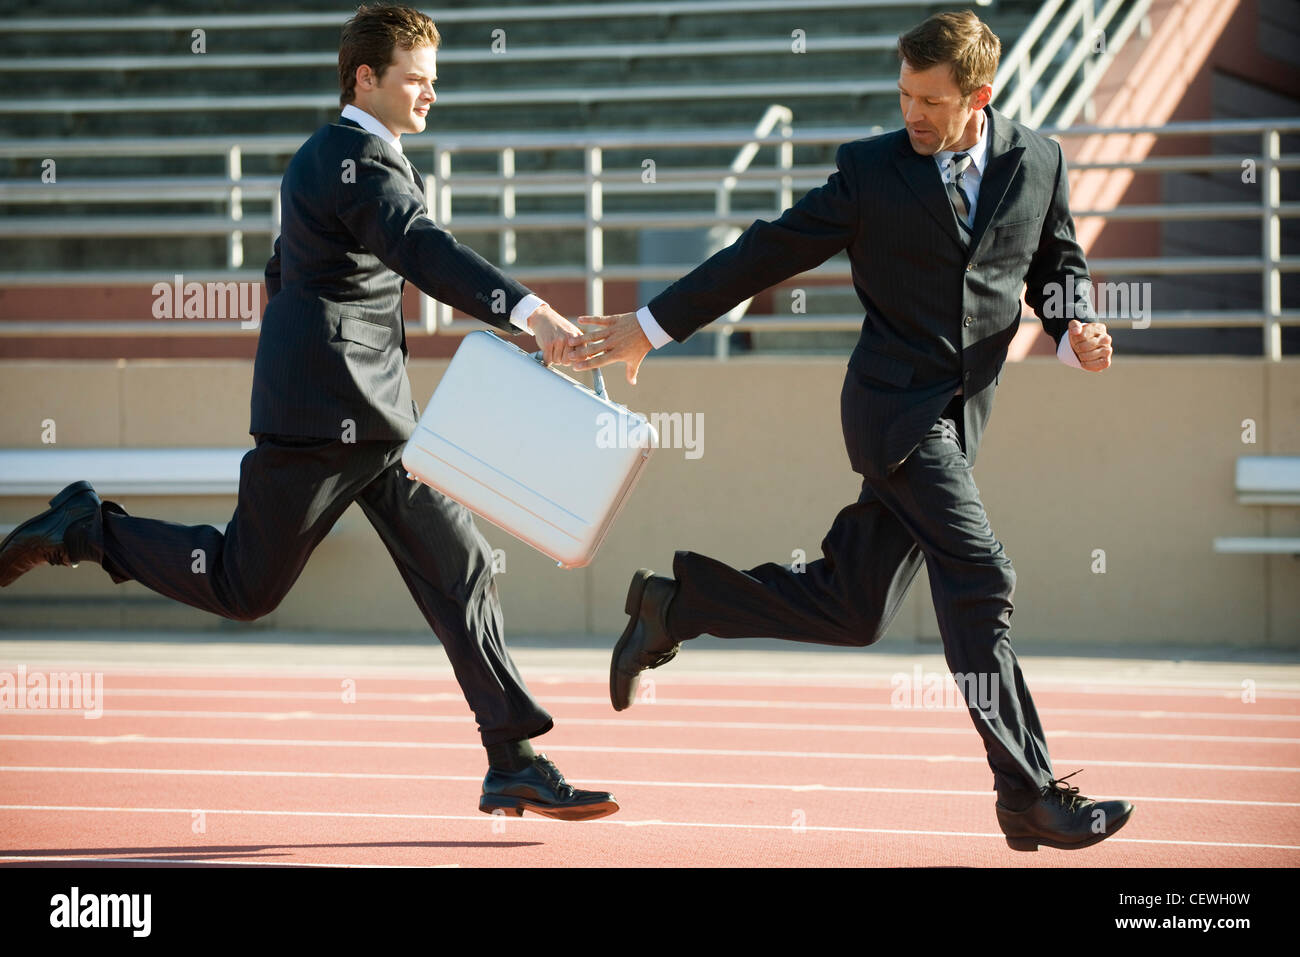 Businessmen handing off briefcase in relay race - Stock Image